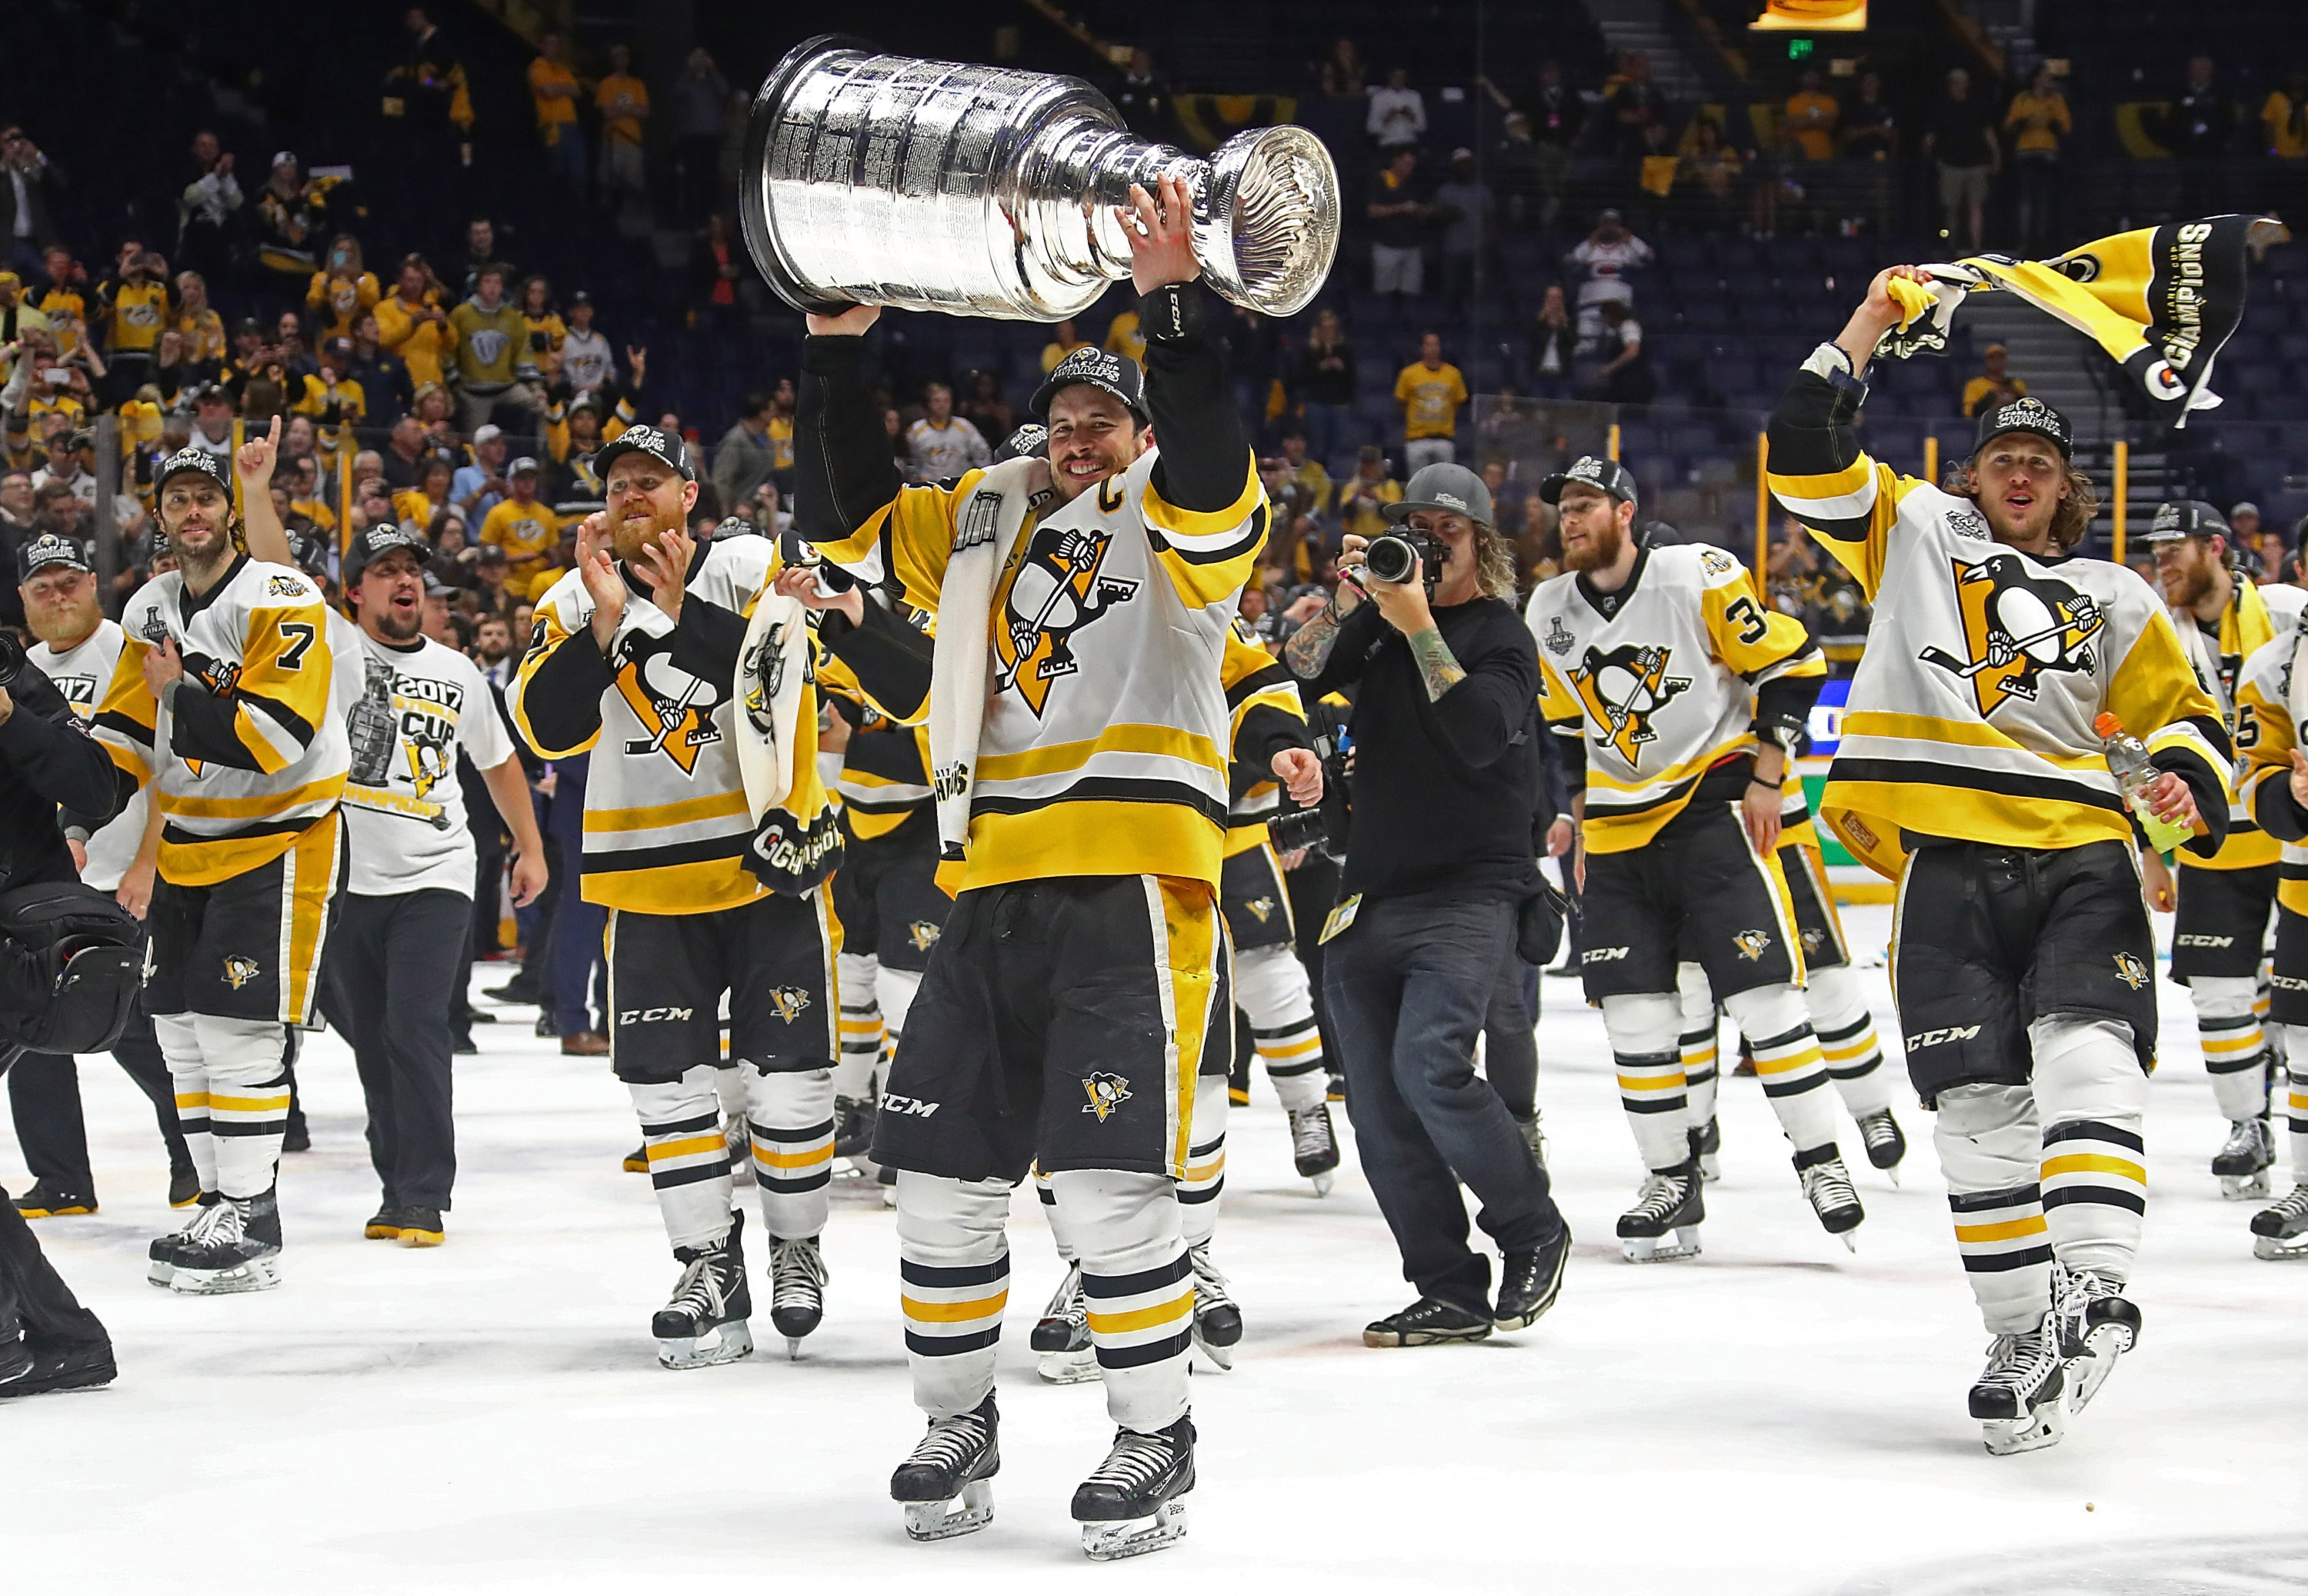 Sidney Crosby #87 of the Pittsburgh Penguins and his teammates celebrate with the Stanley Cup trophy after defeating the Nashville Predators 2-0 in Game Six of the 2017 NHL Stanley Cup Final at the Bridgestone Arena on June 11, 2017 in Nashville, Tennessee.